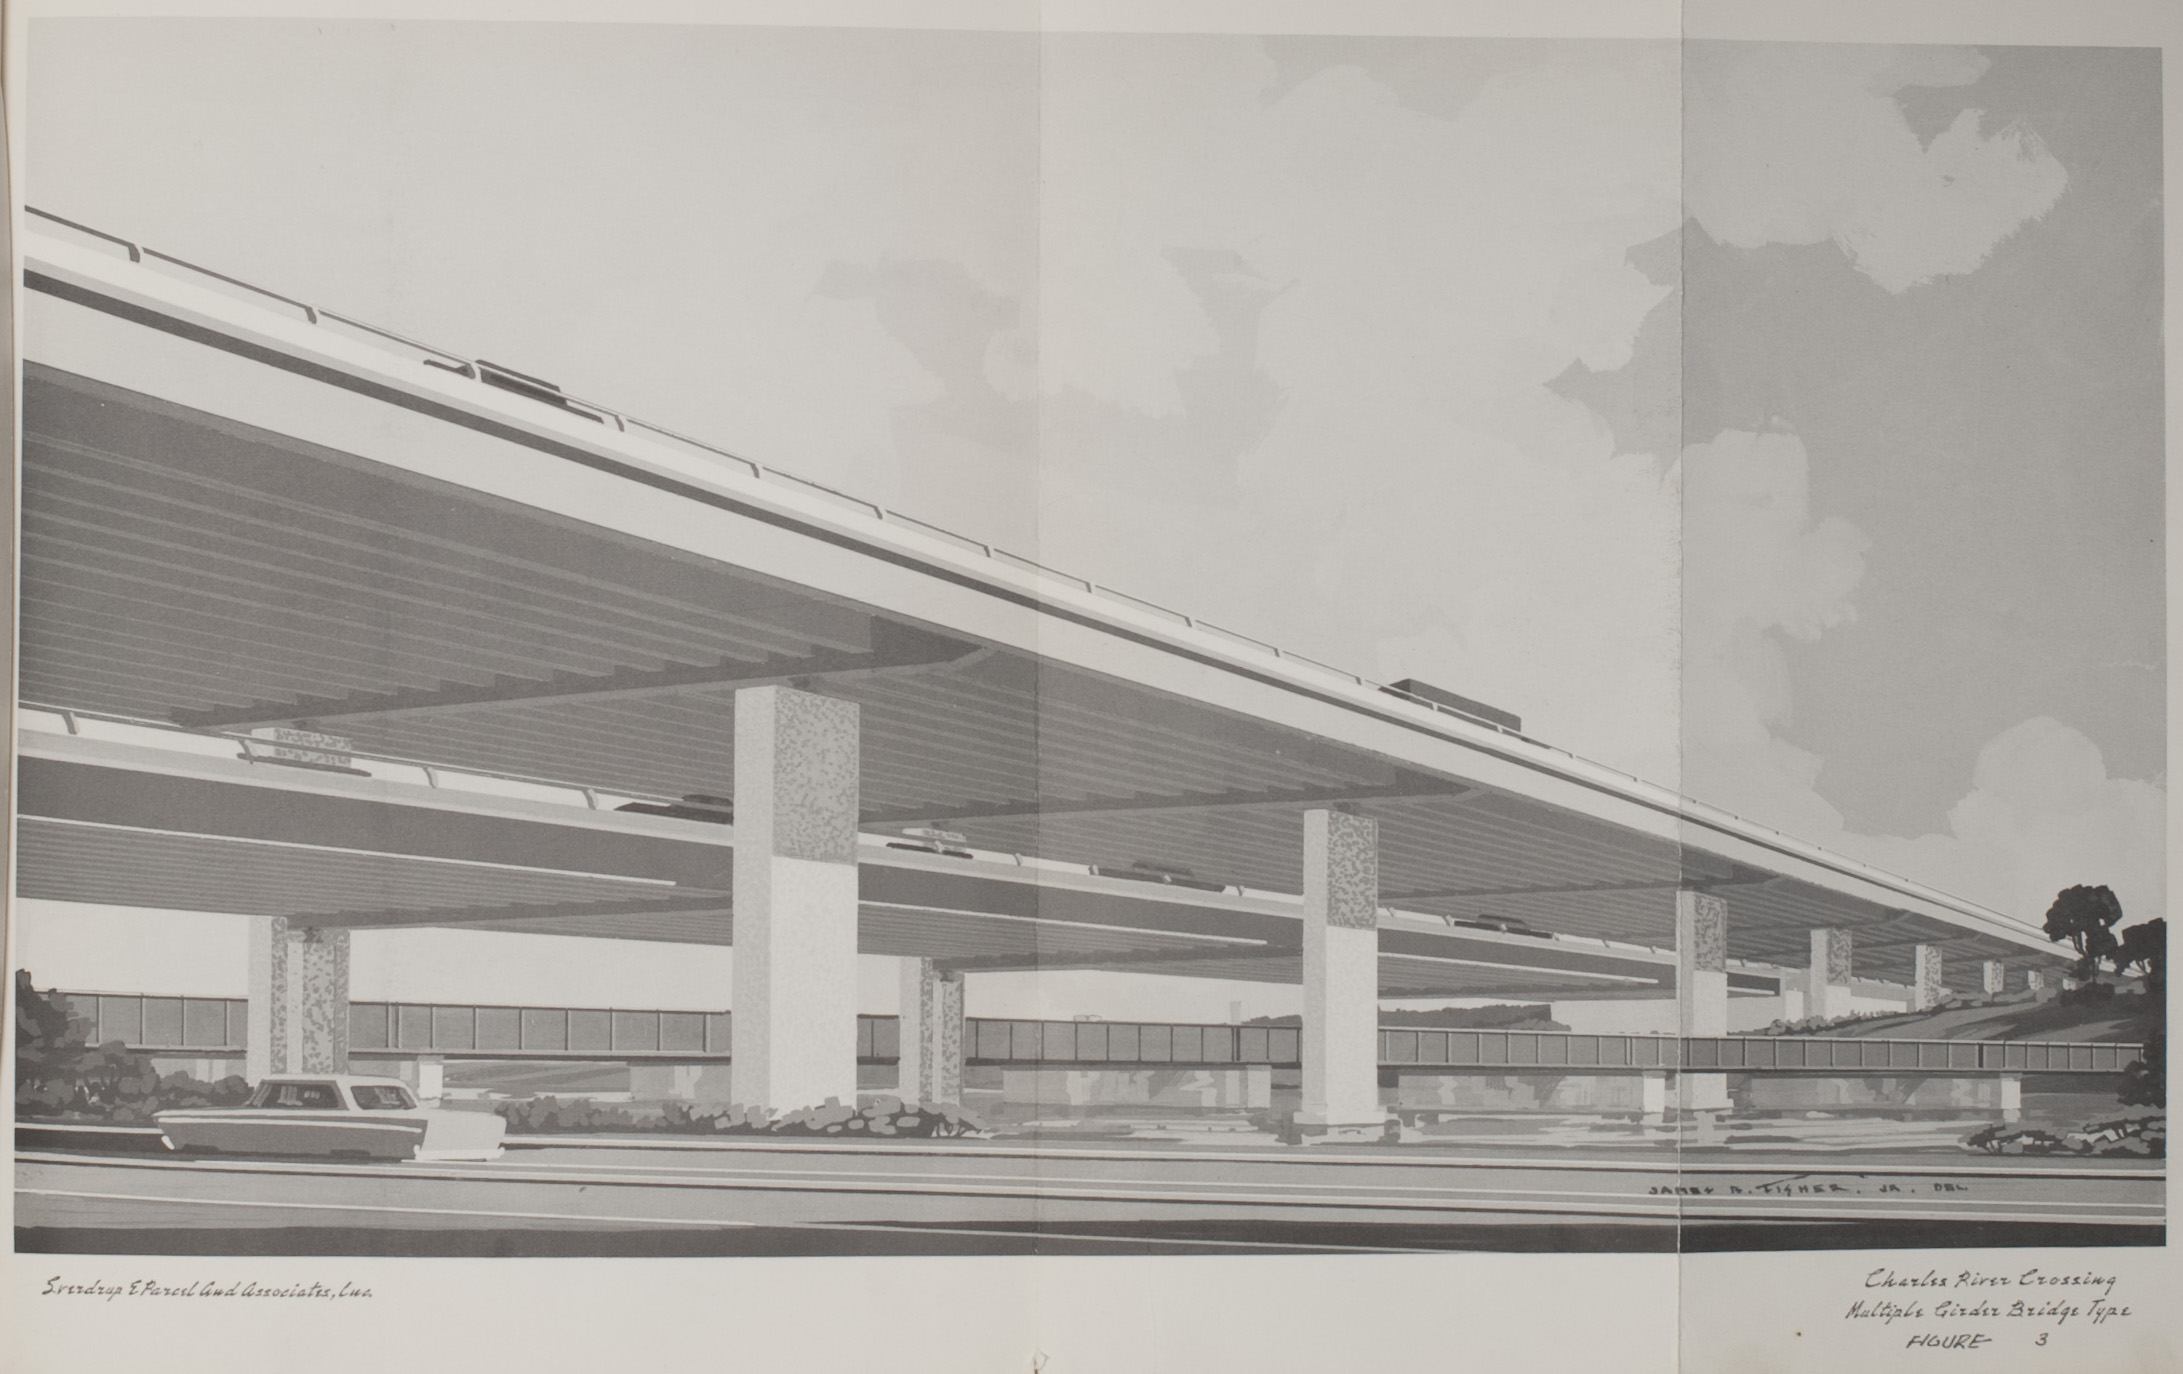 Charles River Crossing overpass